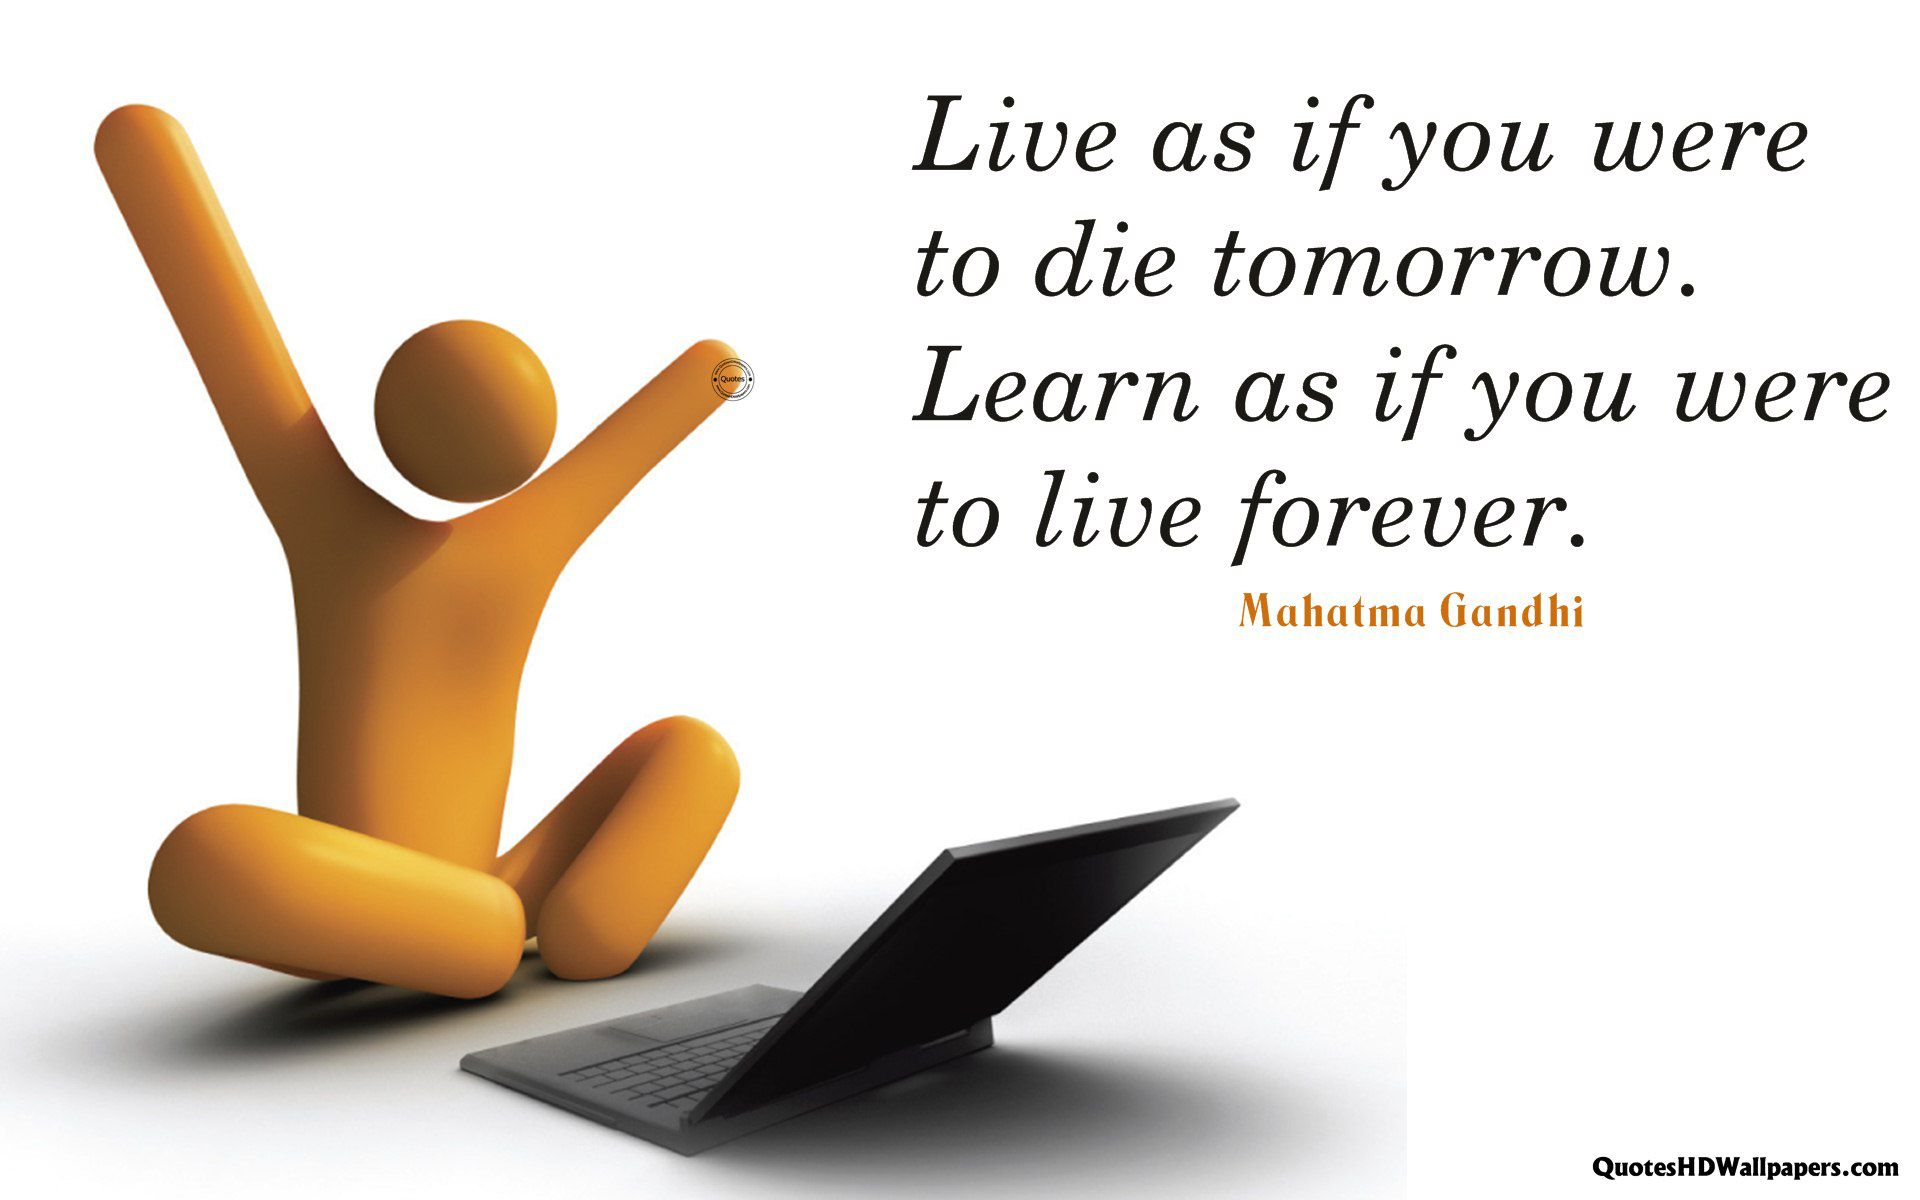 2684-gandhi-quotes-about-learning